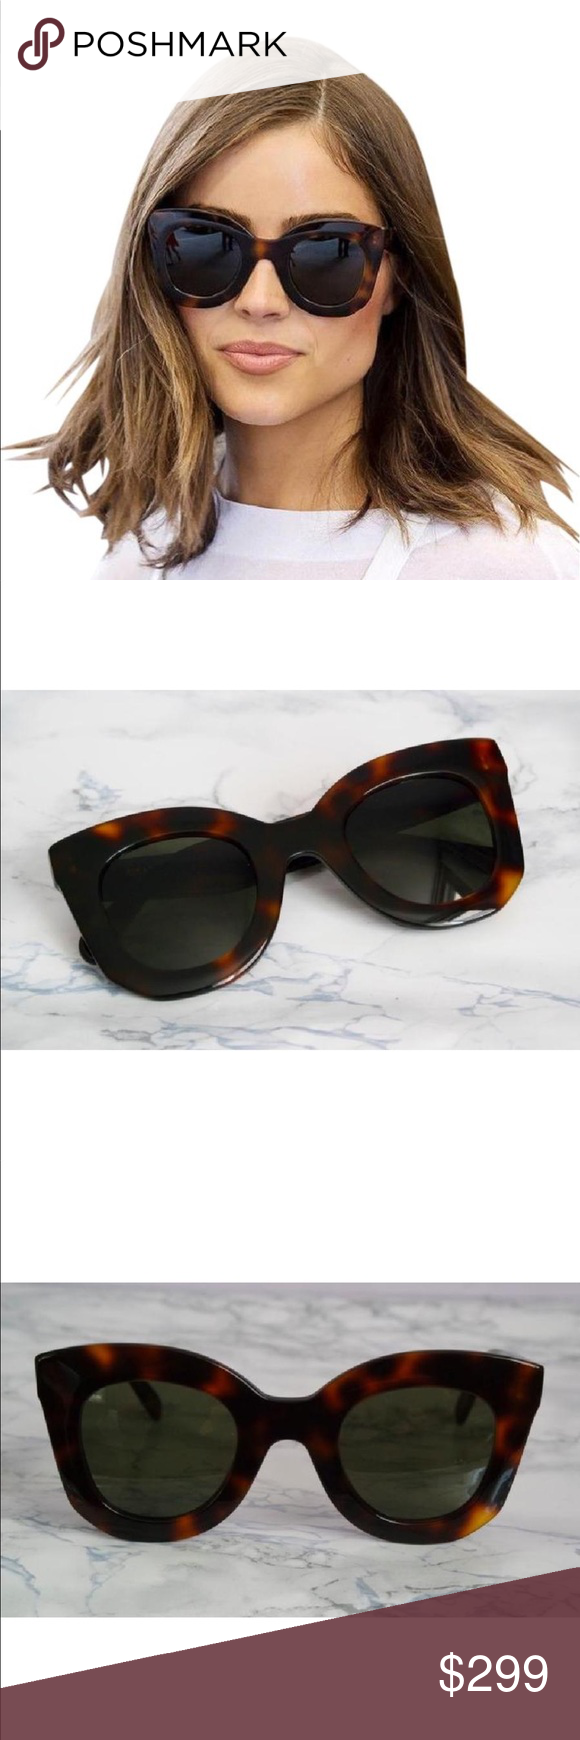 d4419eaa798 Celine Marta sunglasses Brand new Brown Celine Marta CL 41093 S Sunglasses  New without tags! Absolutely unworn and untouched. 10000% authentic!